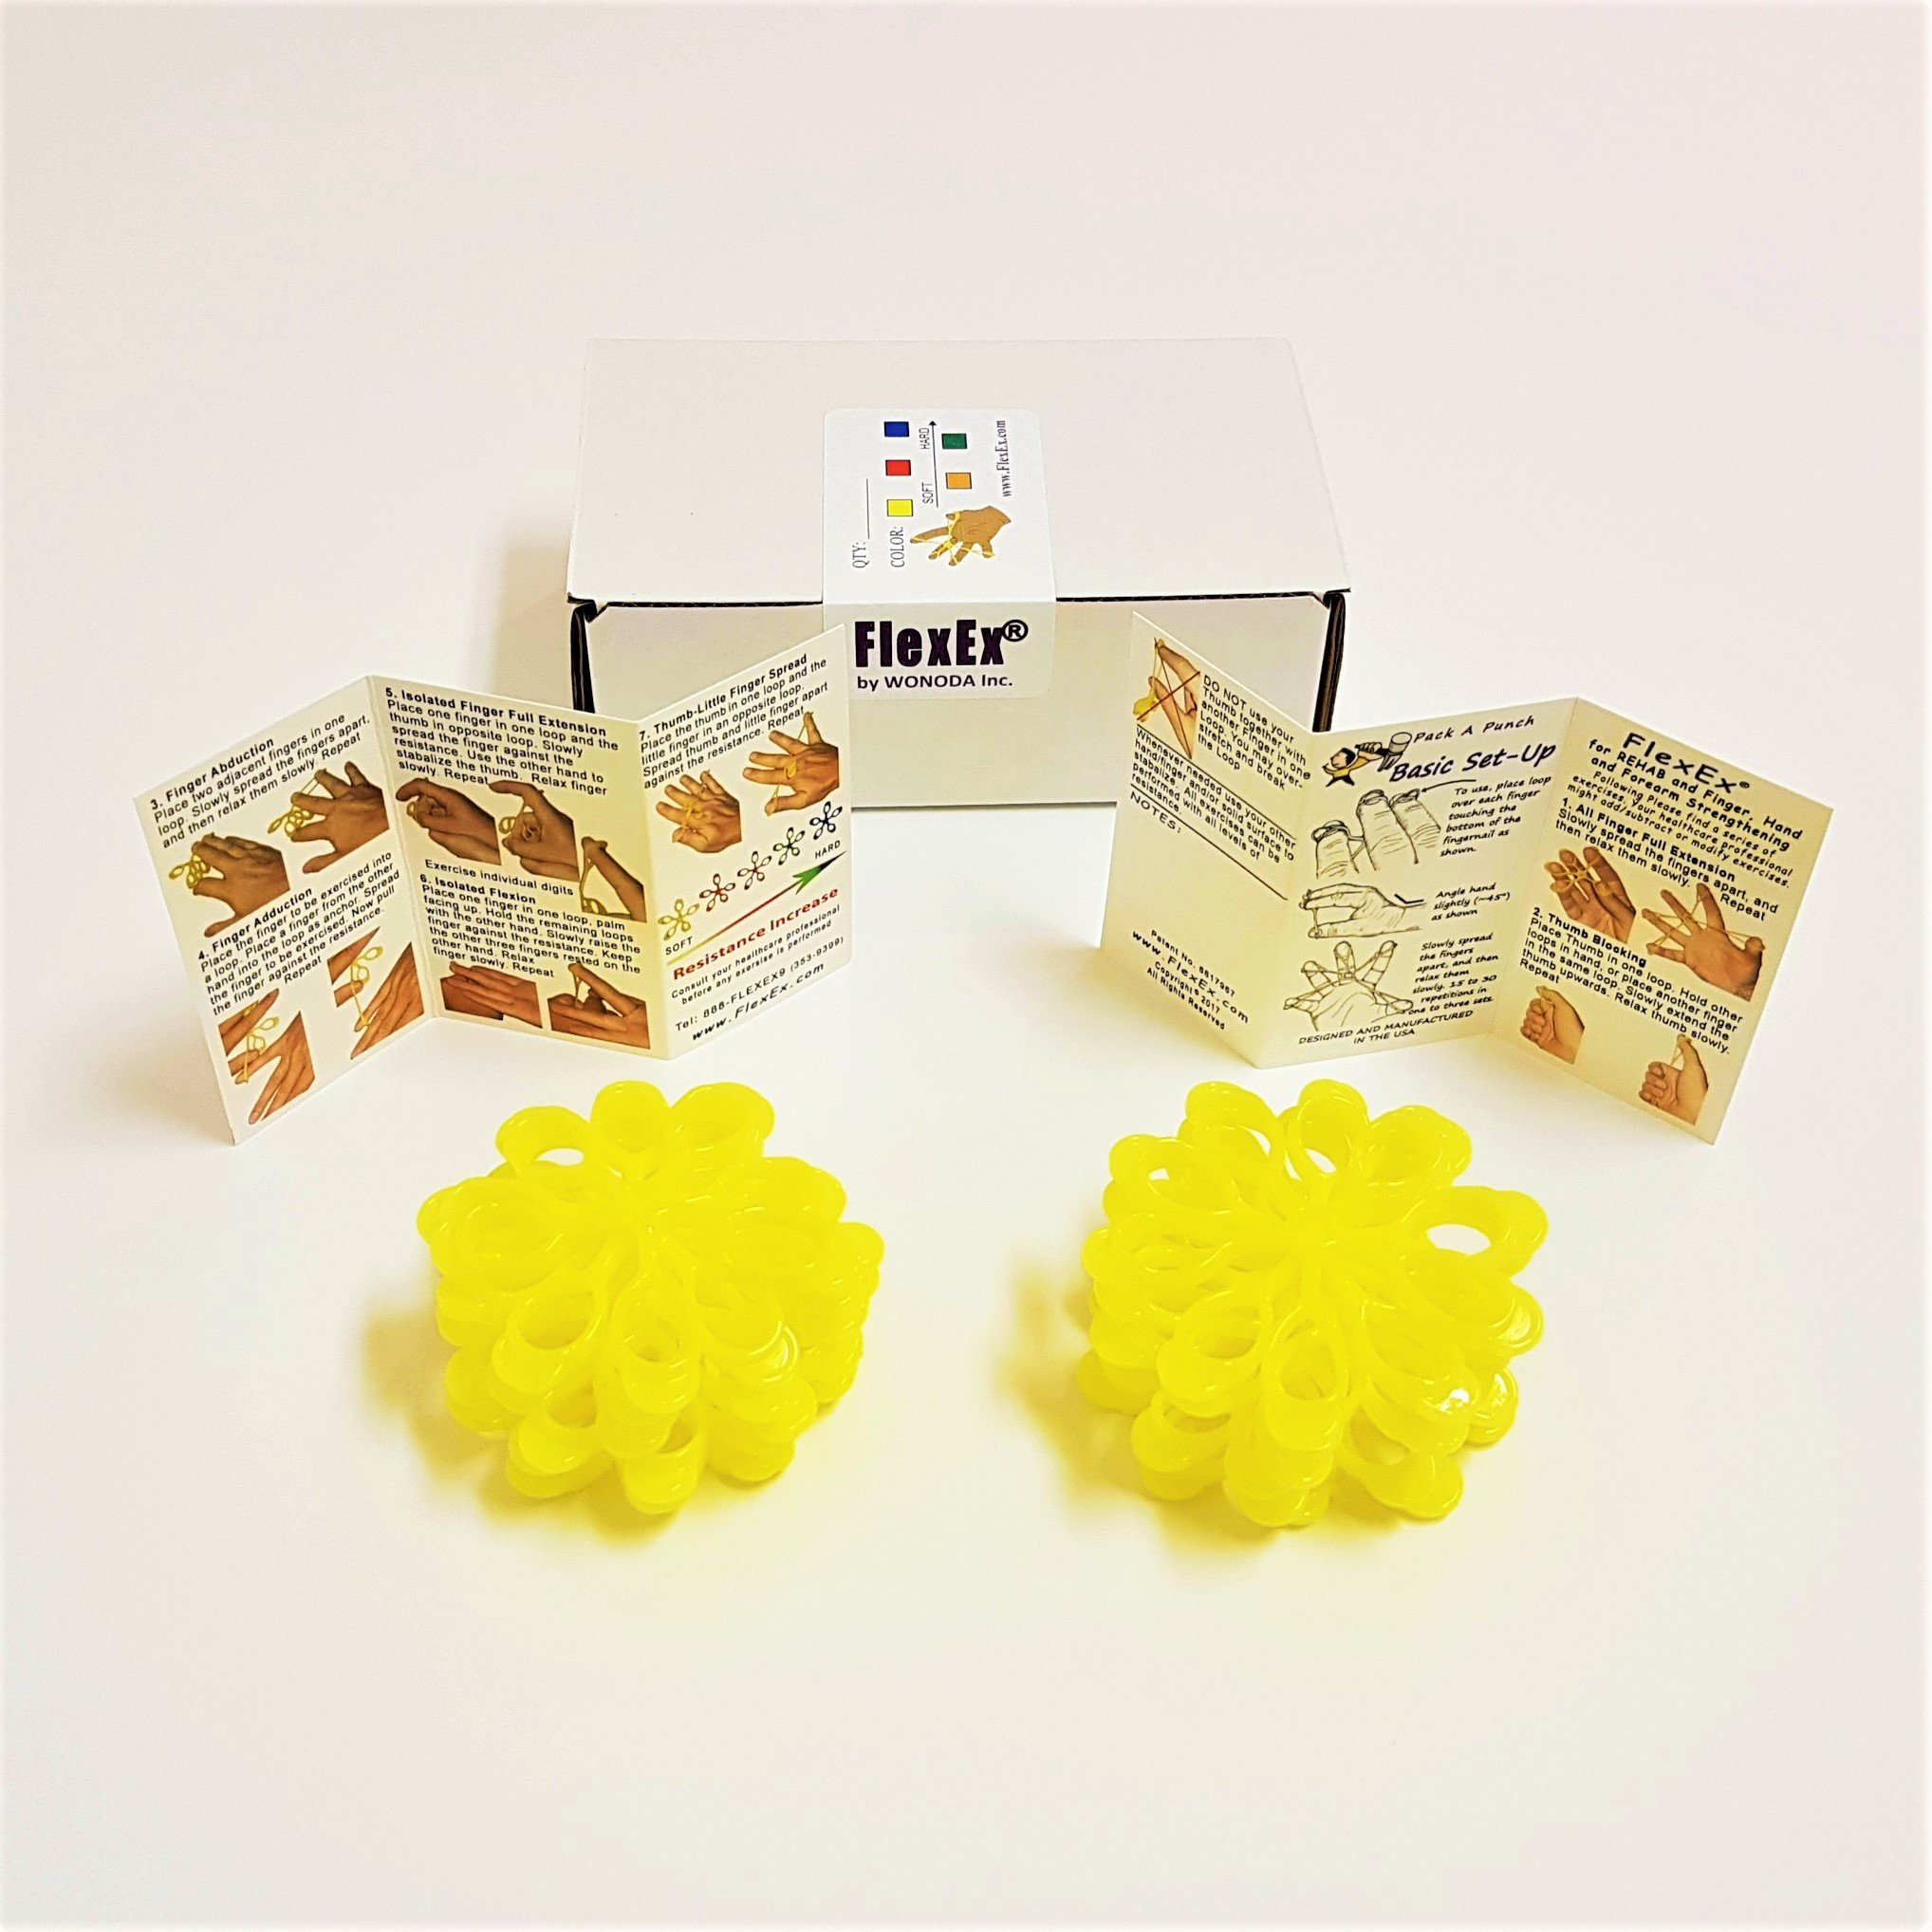 FlexEx Hand Exerciser - 20 Pack Yellow - Light Resistance, Made In USA by WONODA (Image #2)